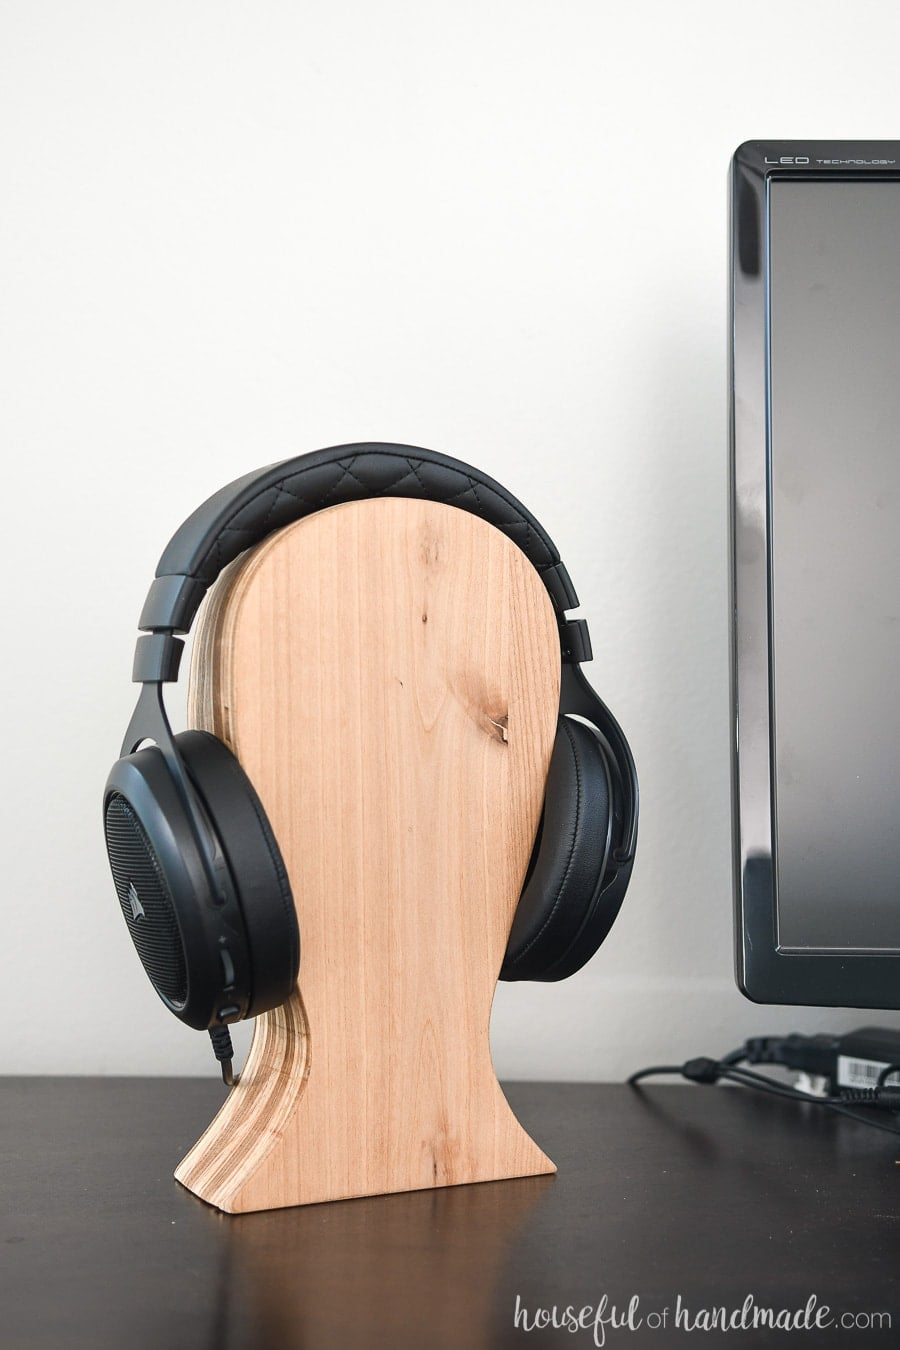 Computer desk with headphones on a DIY headphone stand.